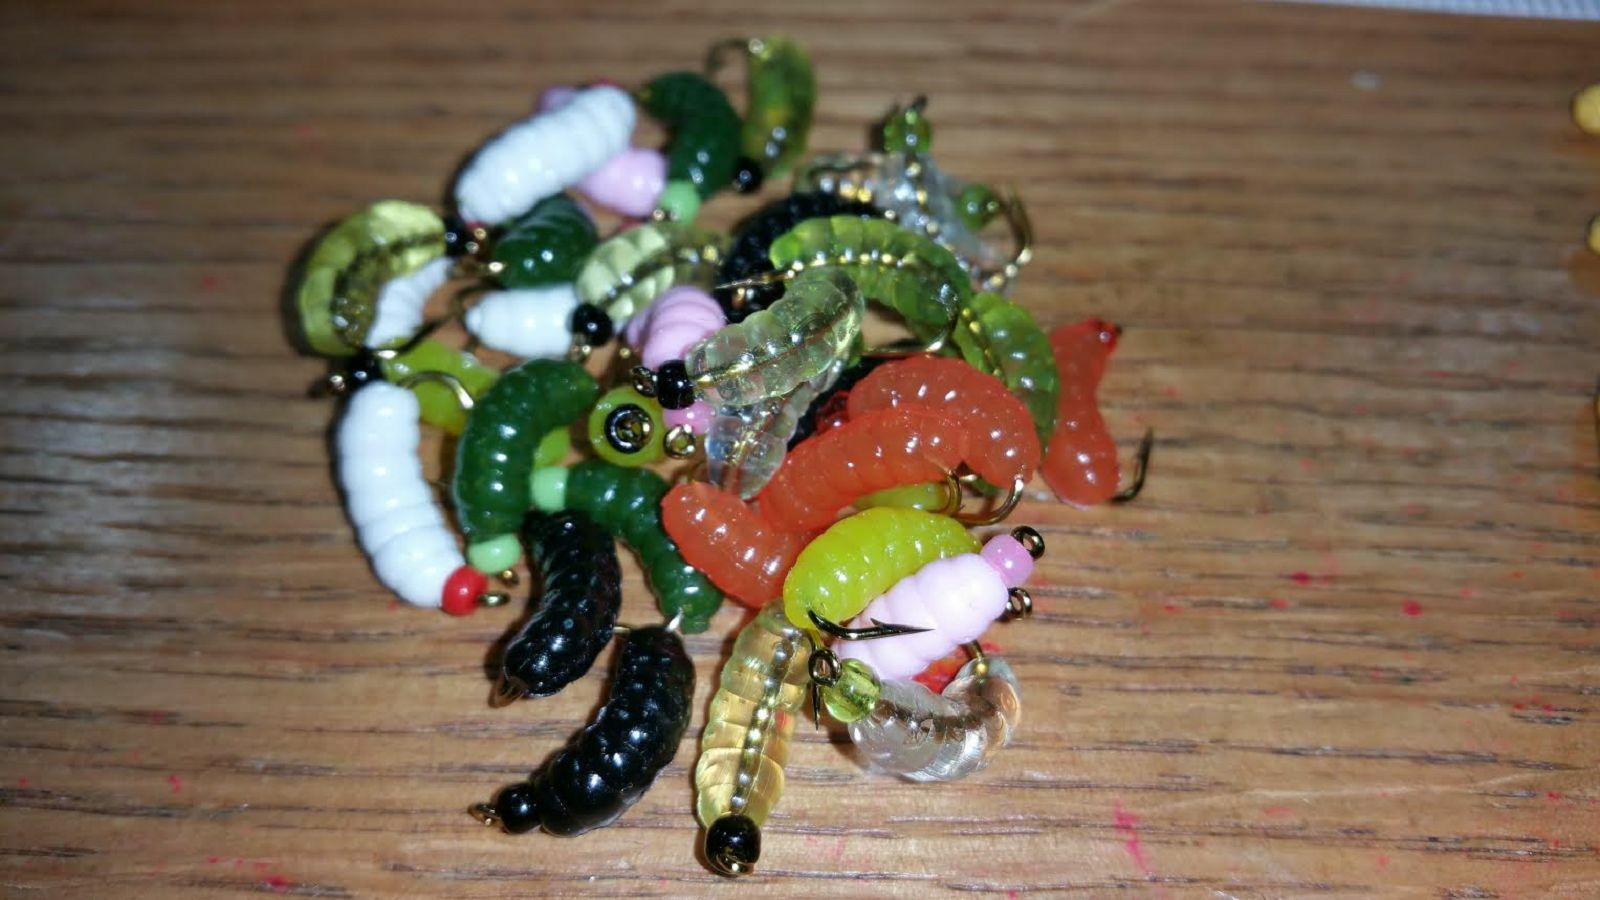 12  Dozen - BH Rubber Wax Worm Grub Mix Wet Fly - Trout, Crappie, Pan Fish  outlet online